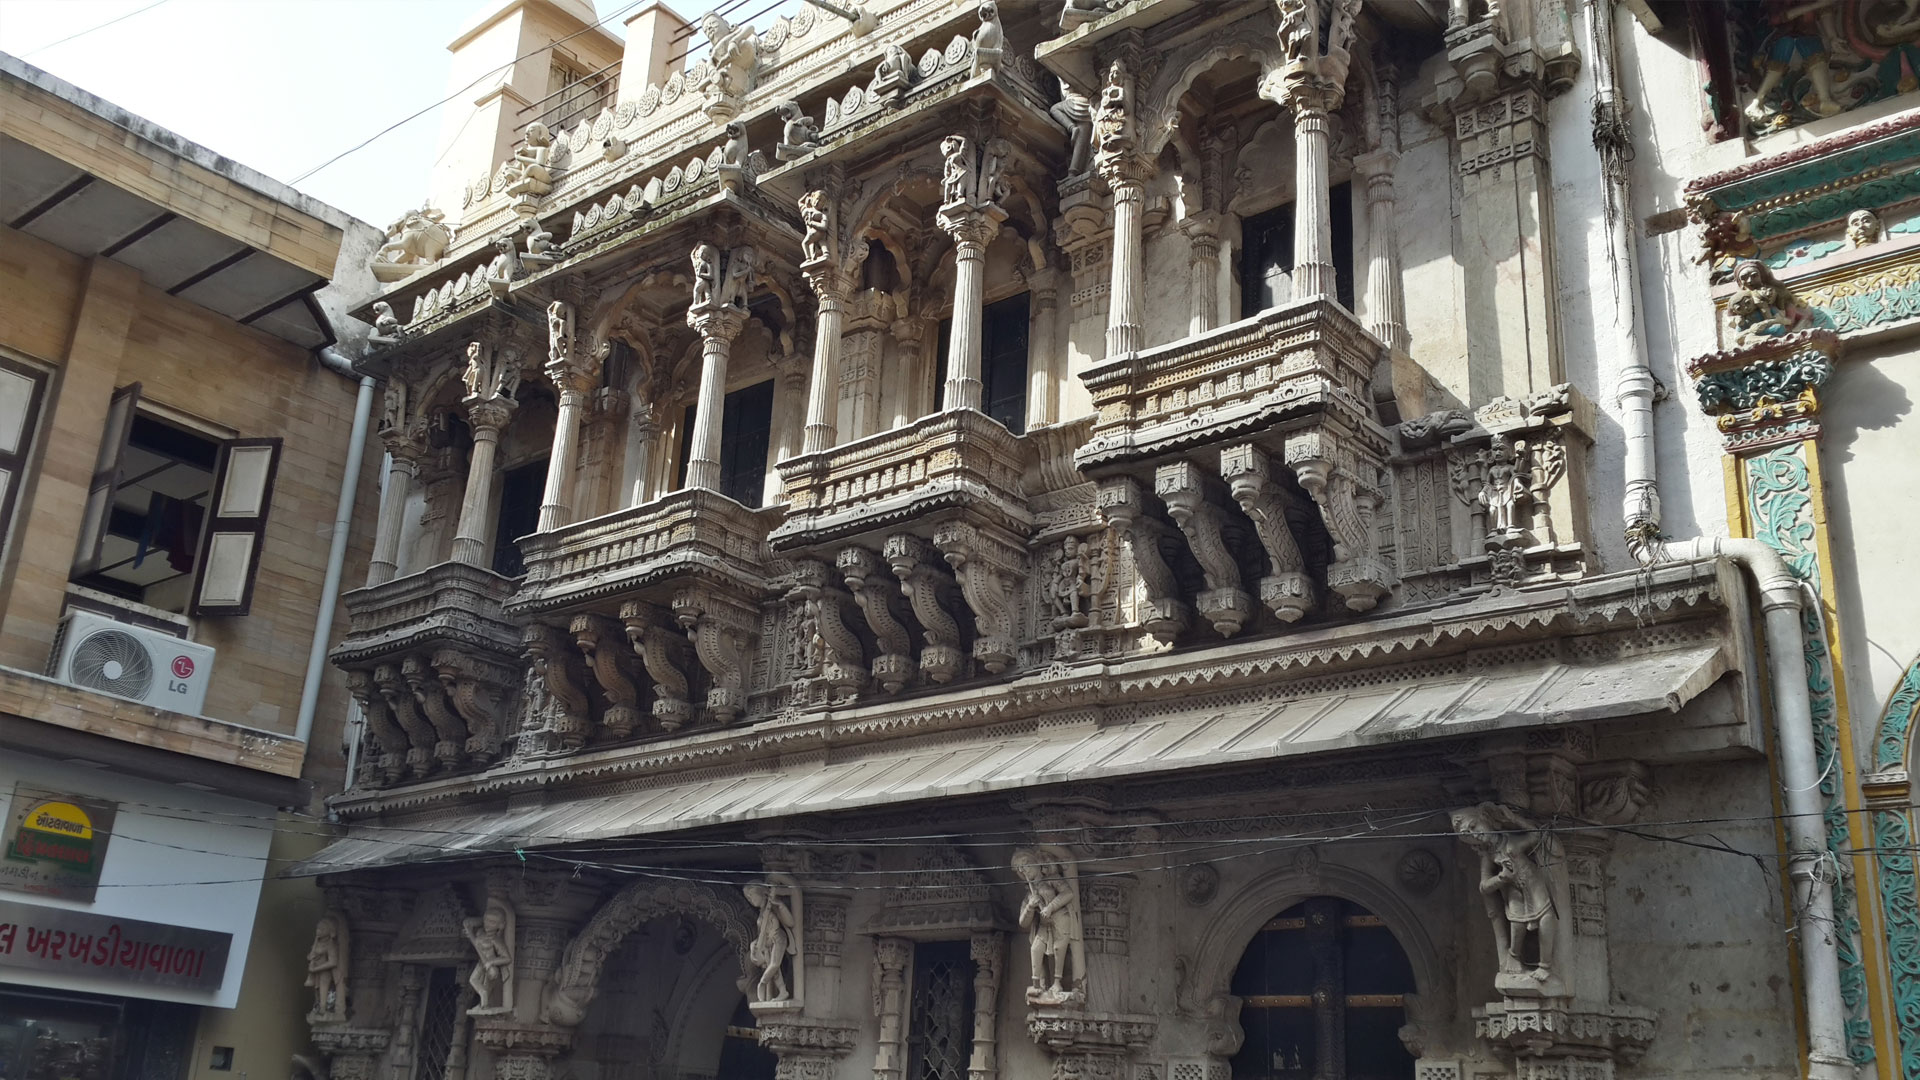 The facade of a Jain Temple in the old city of Ahmedabad